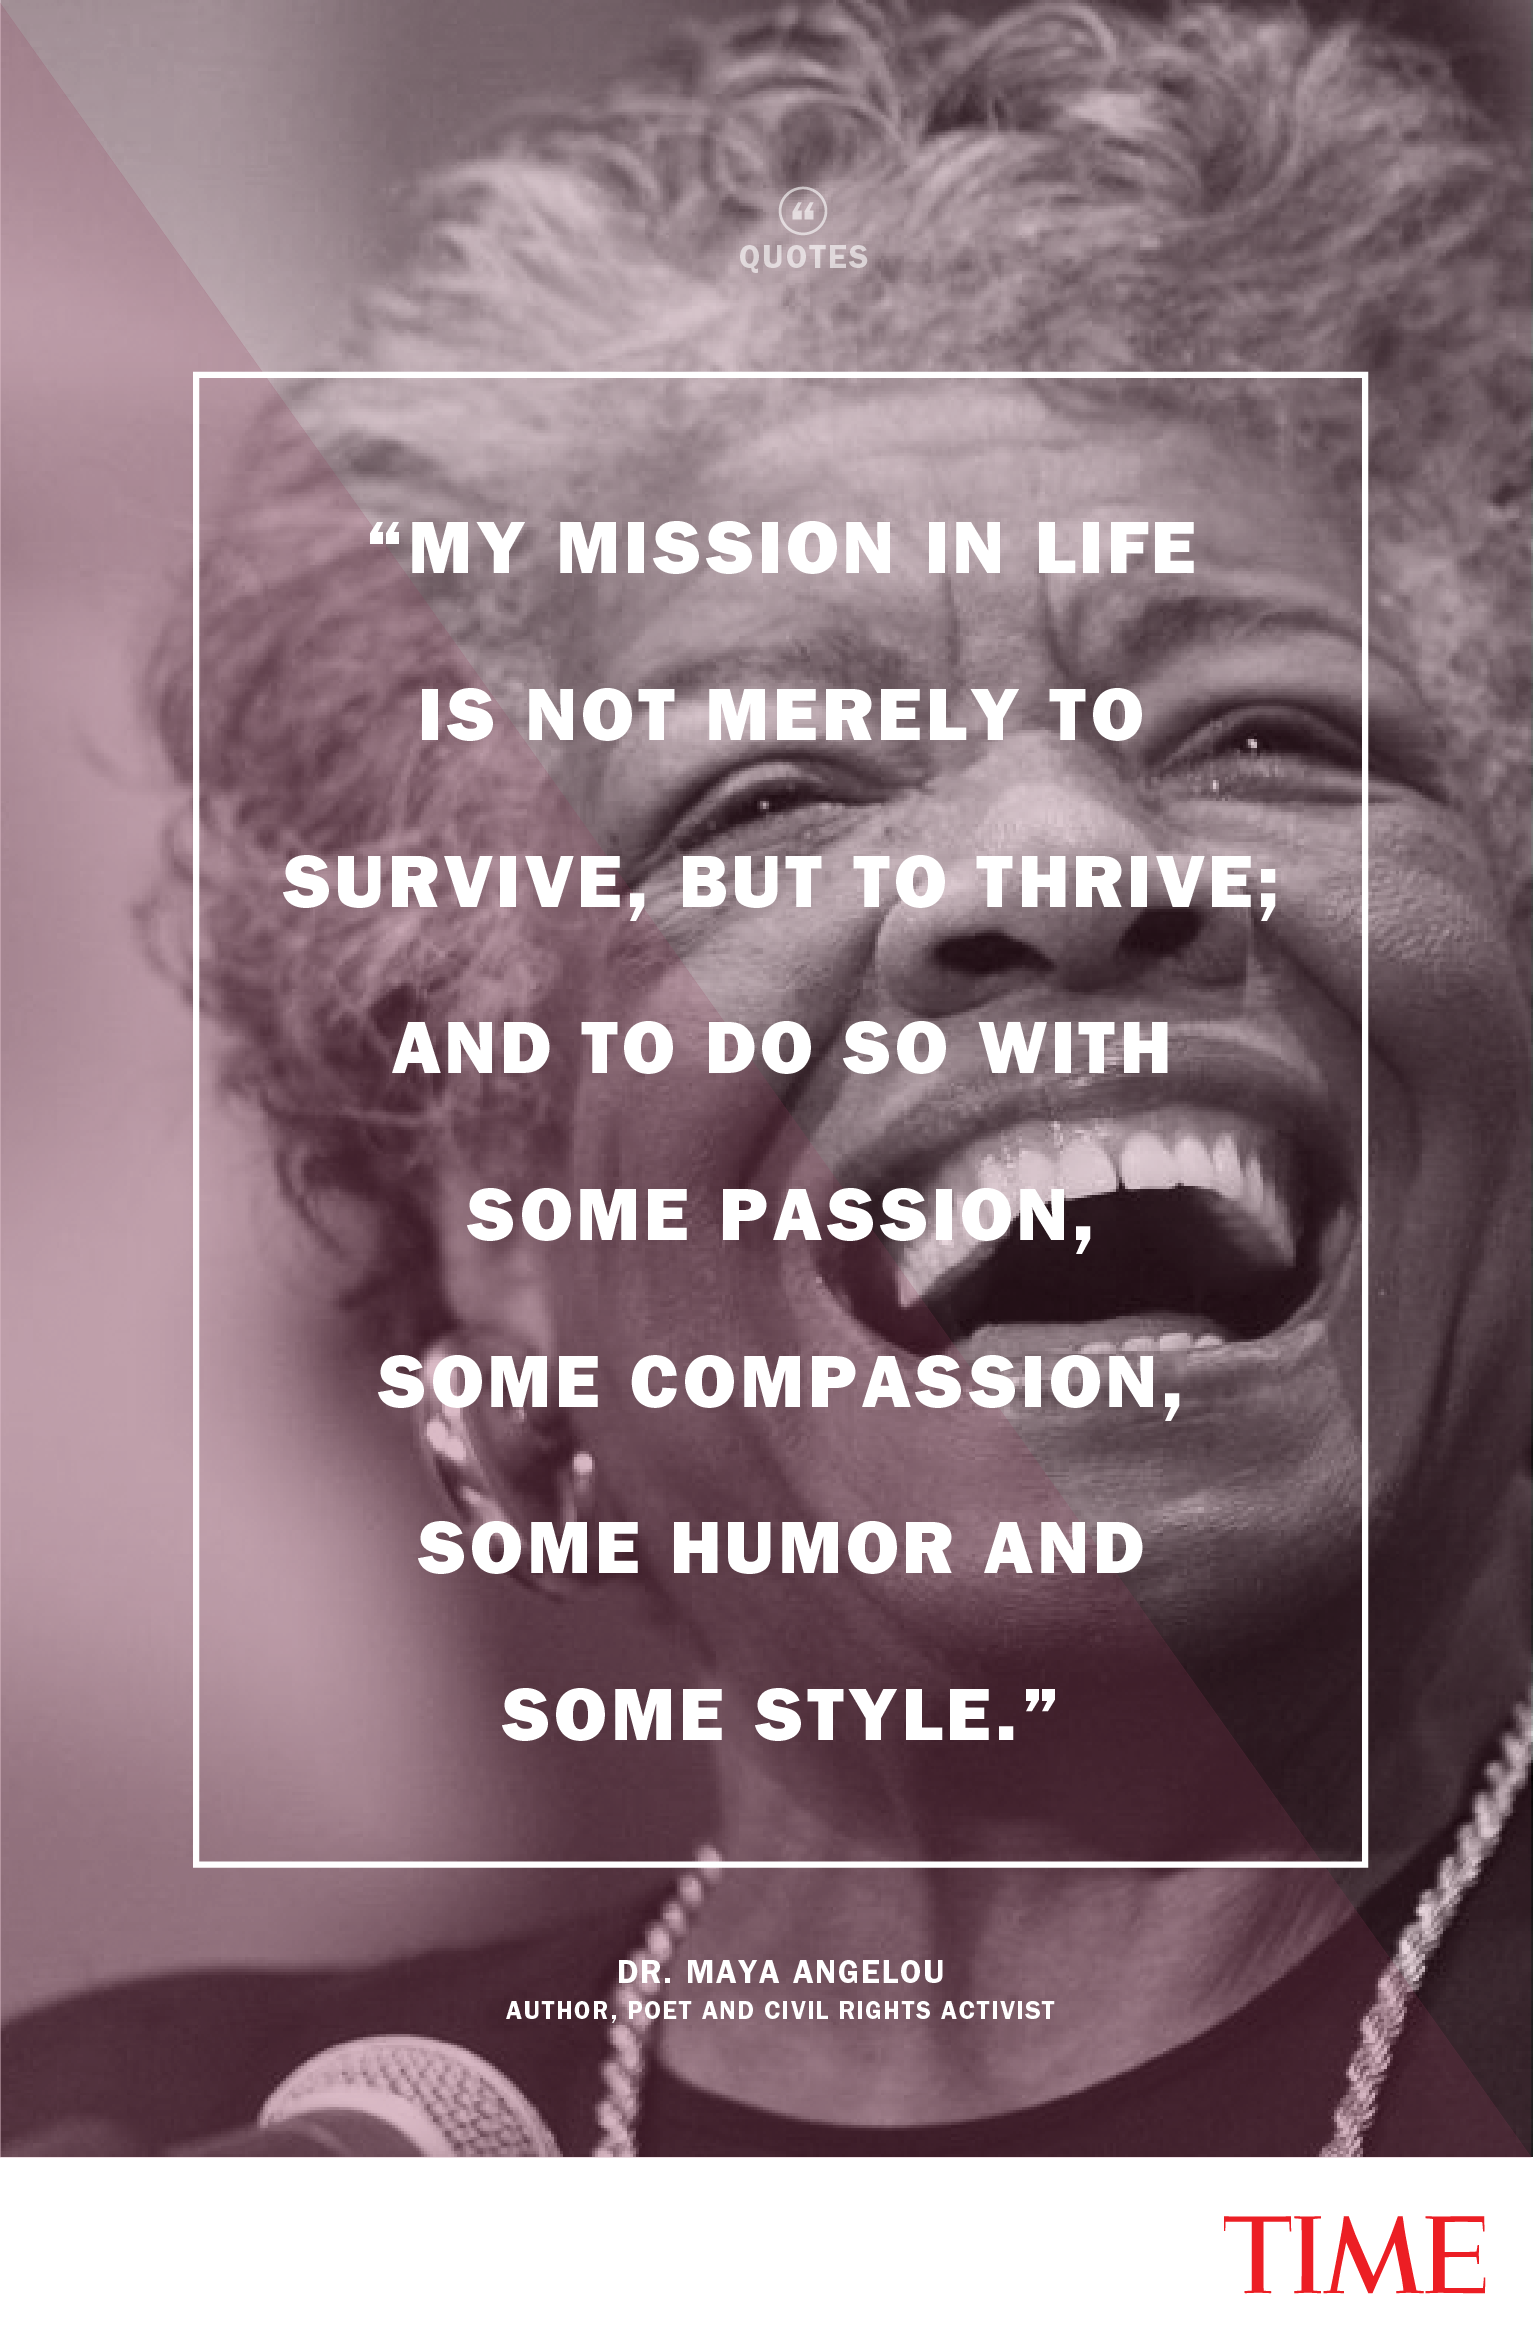 My mission in life is not merely